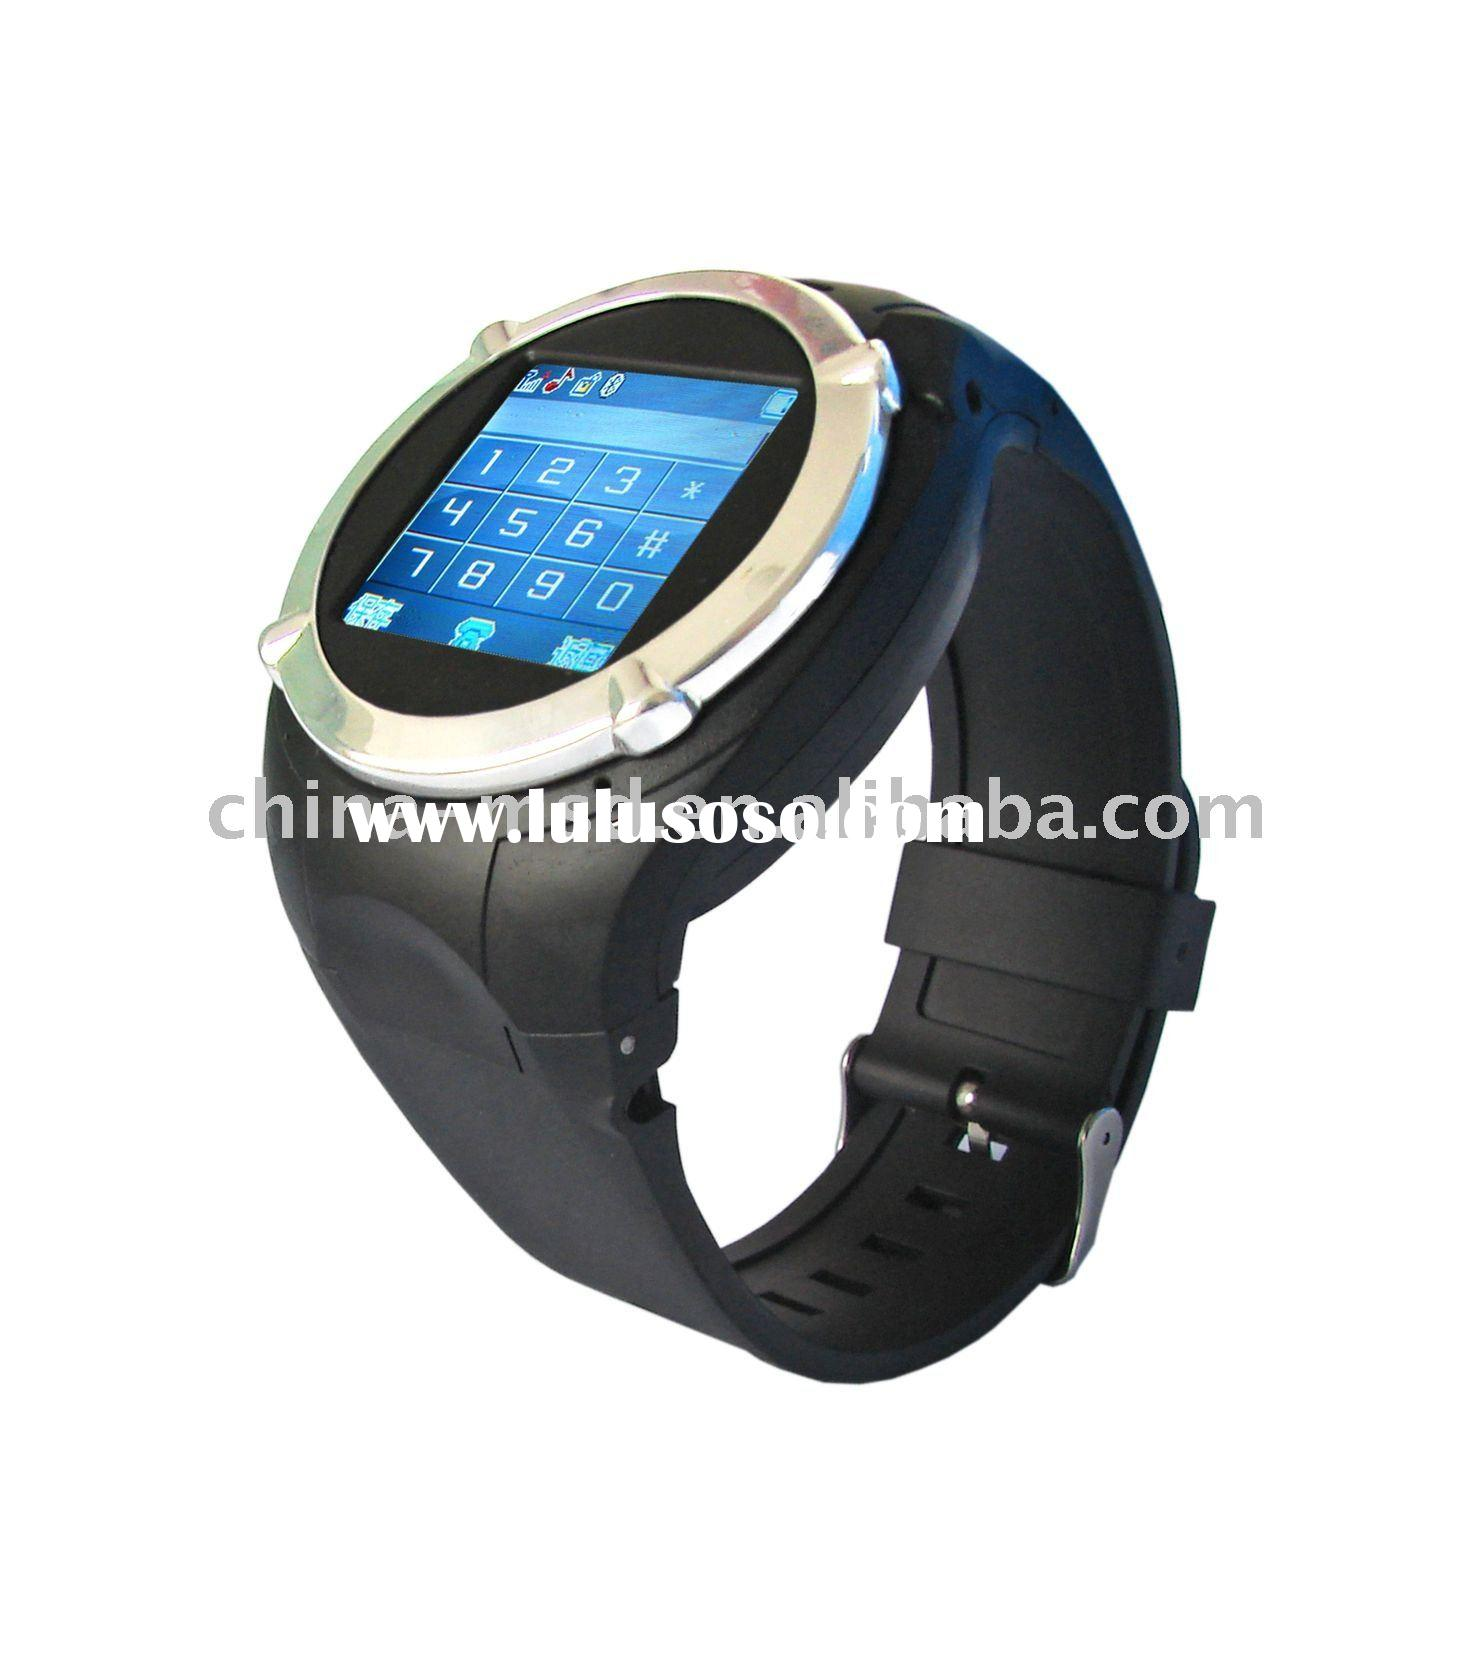 Wholesale, MQ998 Watch Phone with MP4 player and FM Radio, Student watch, sport cell phone watch